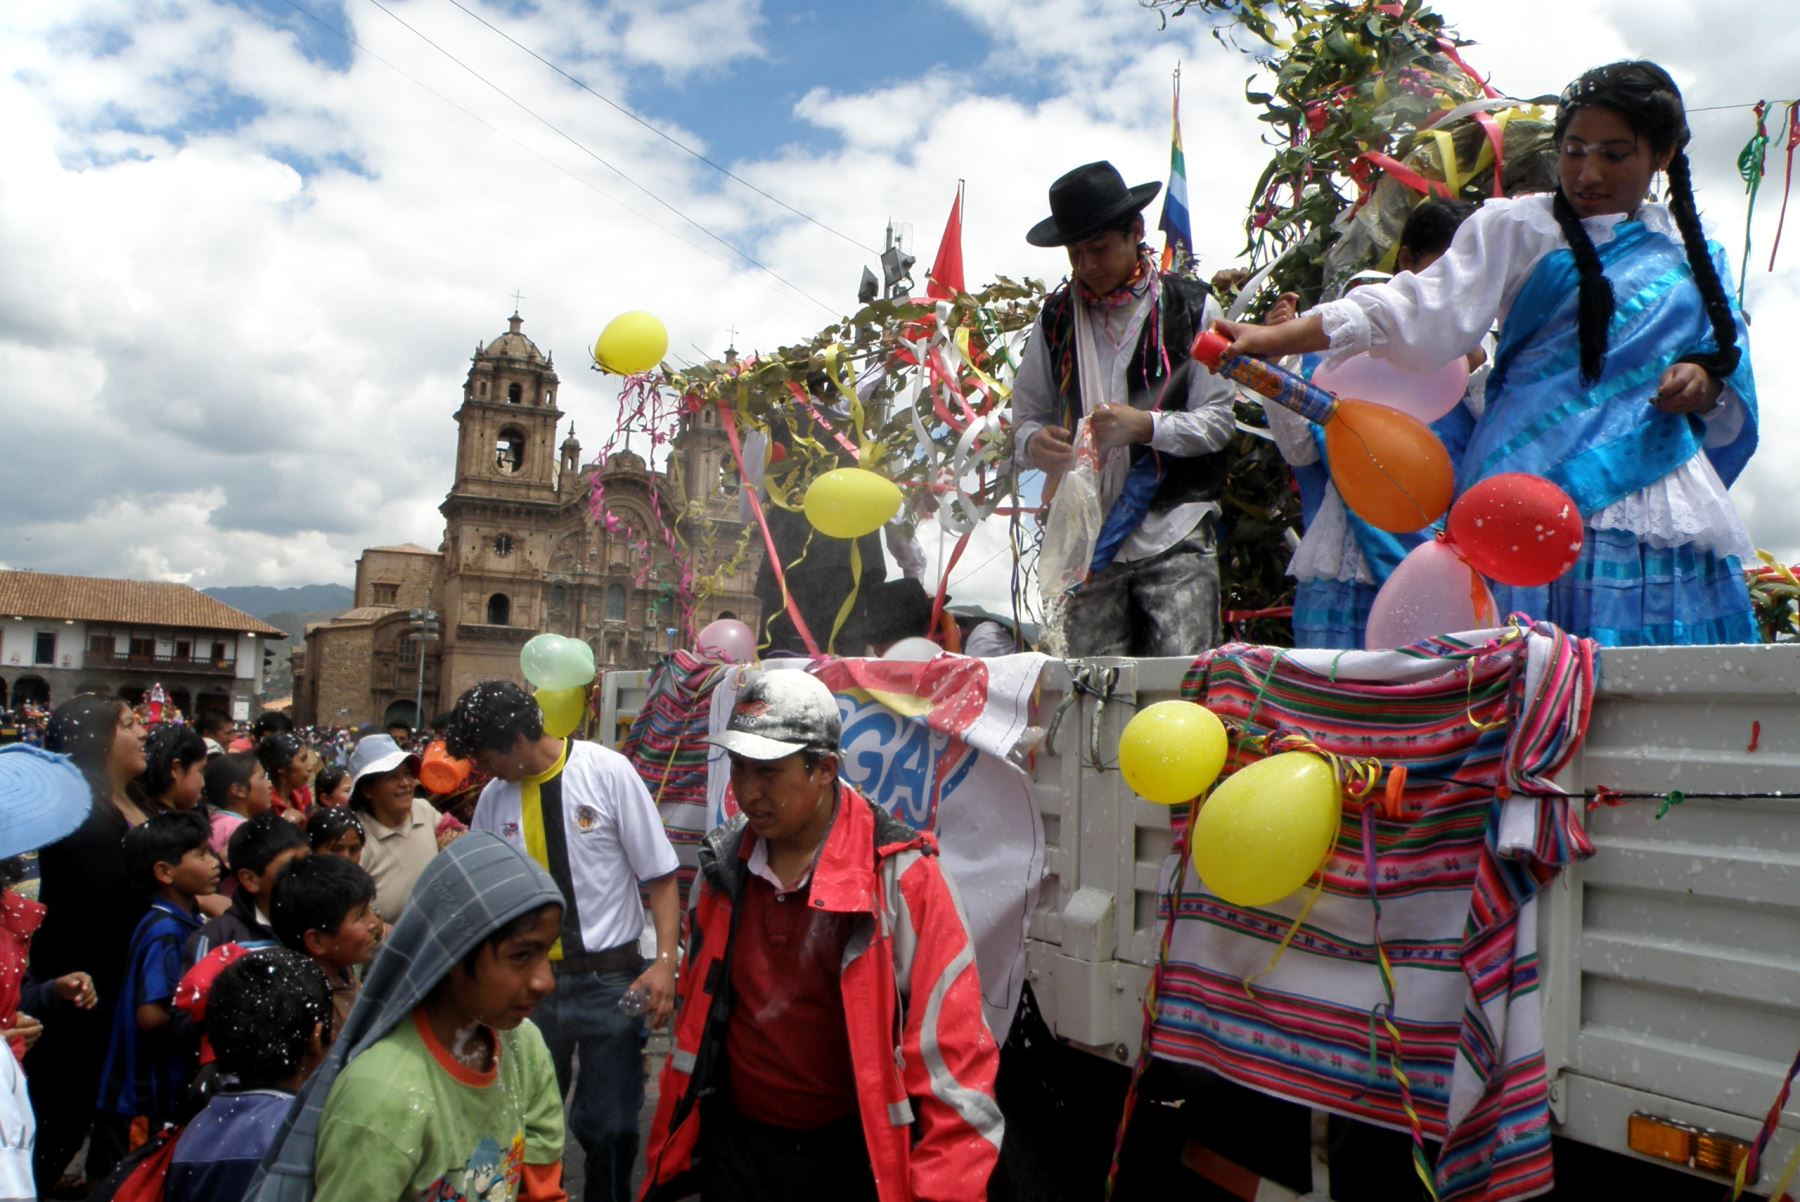 Qhaswa Tusuy parade to delight locals and tourists in Cusco